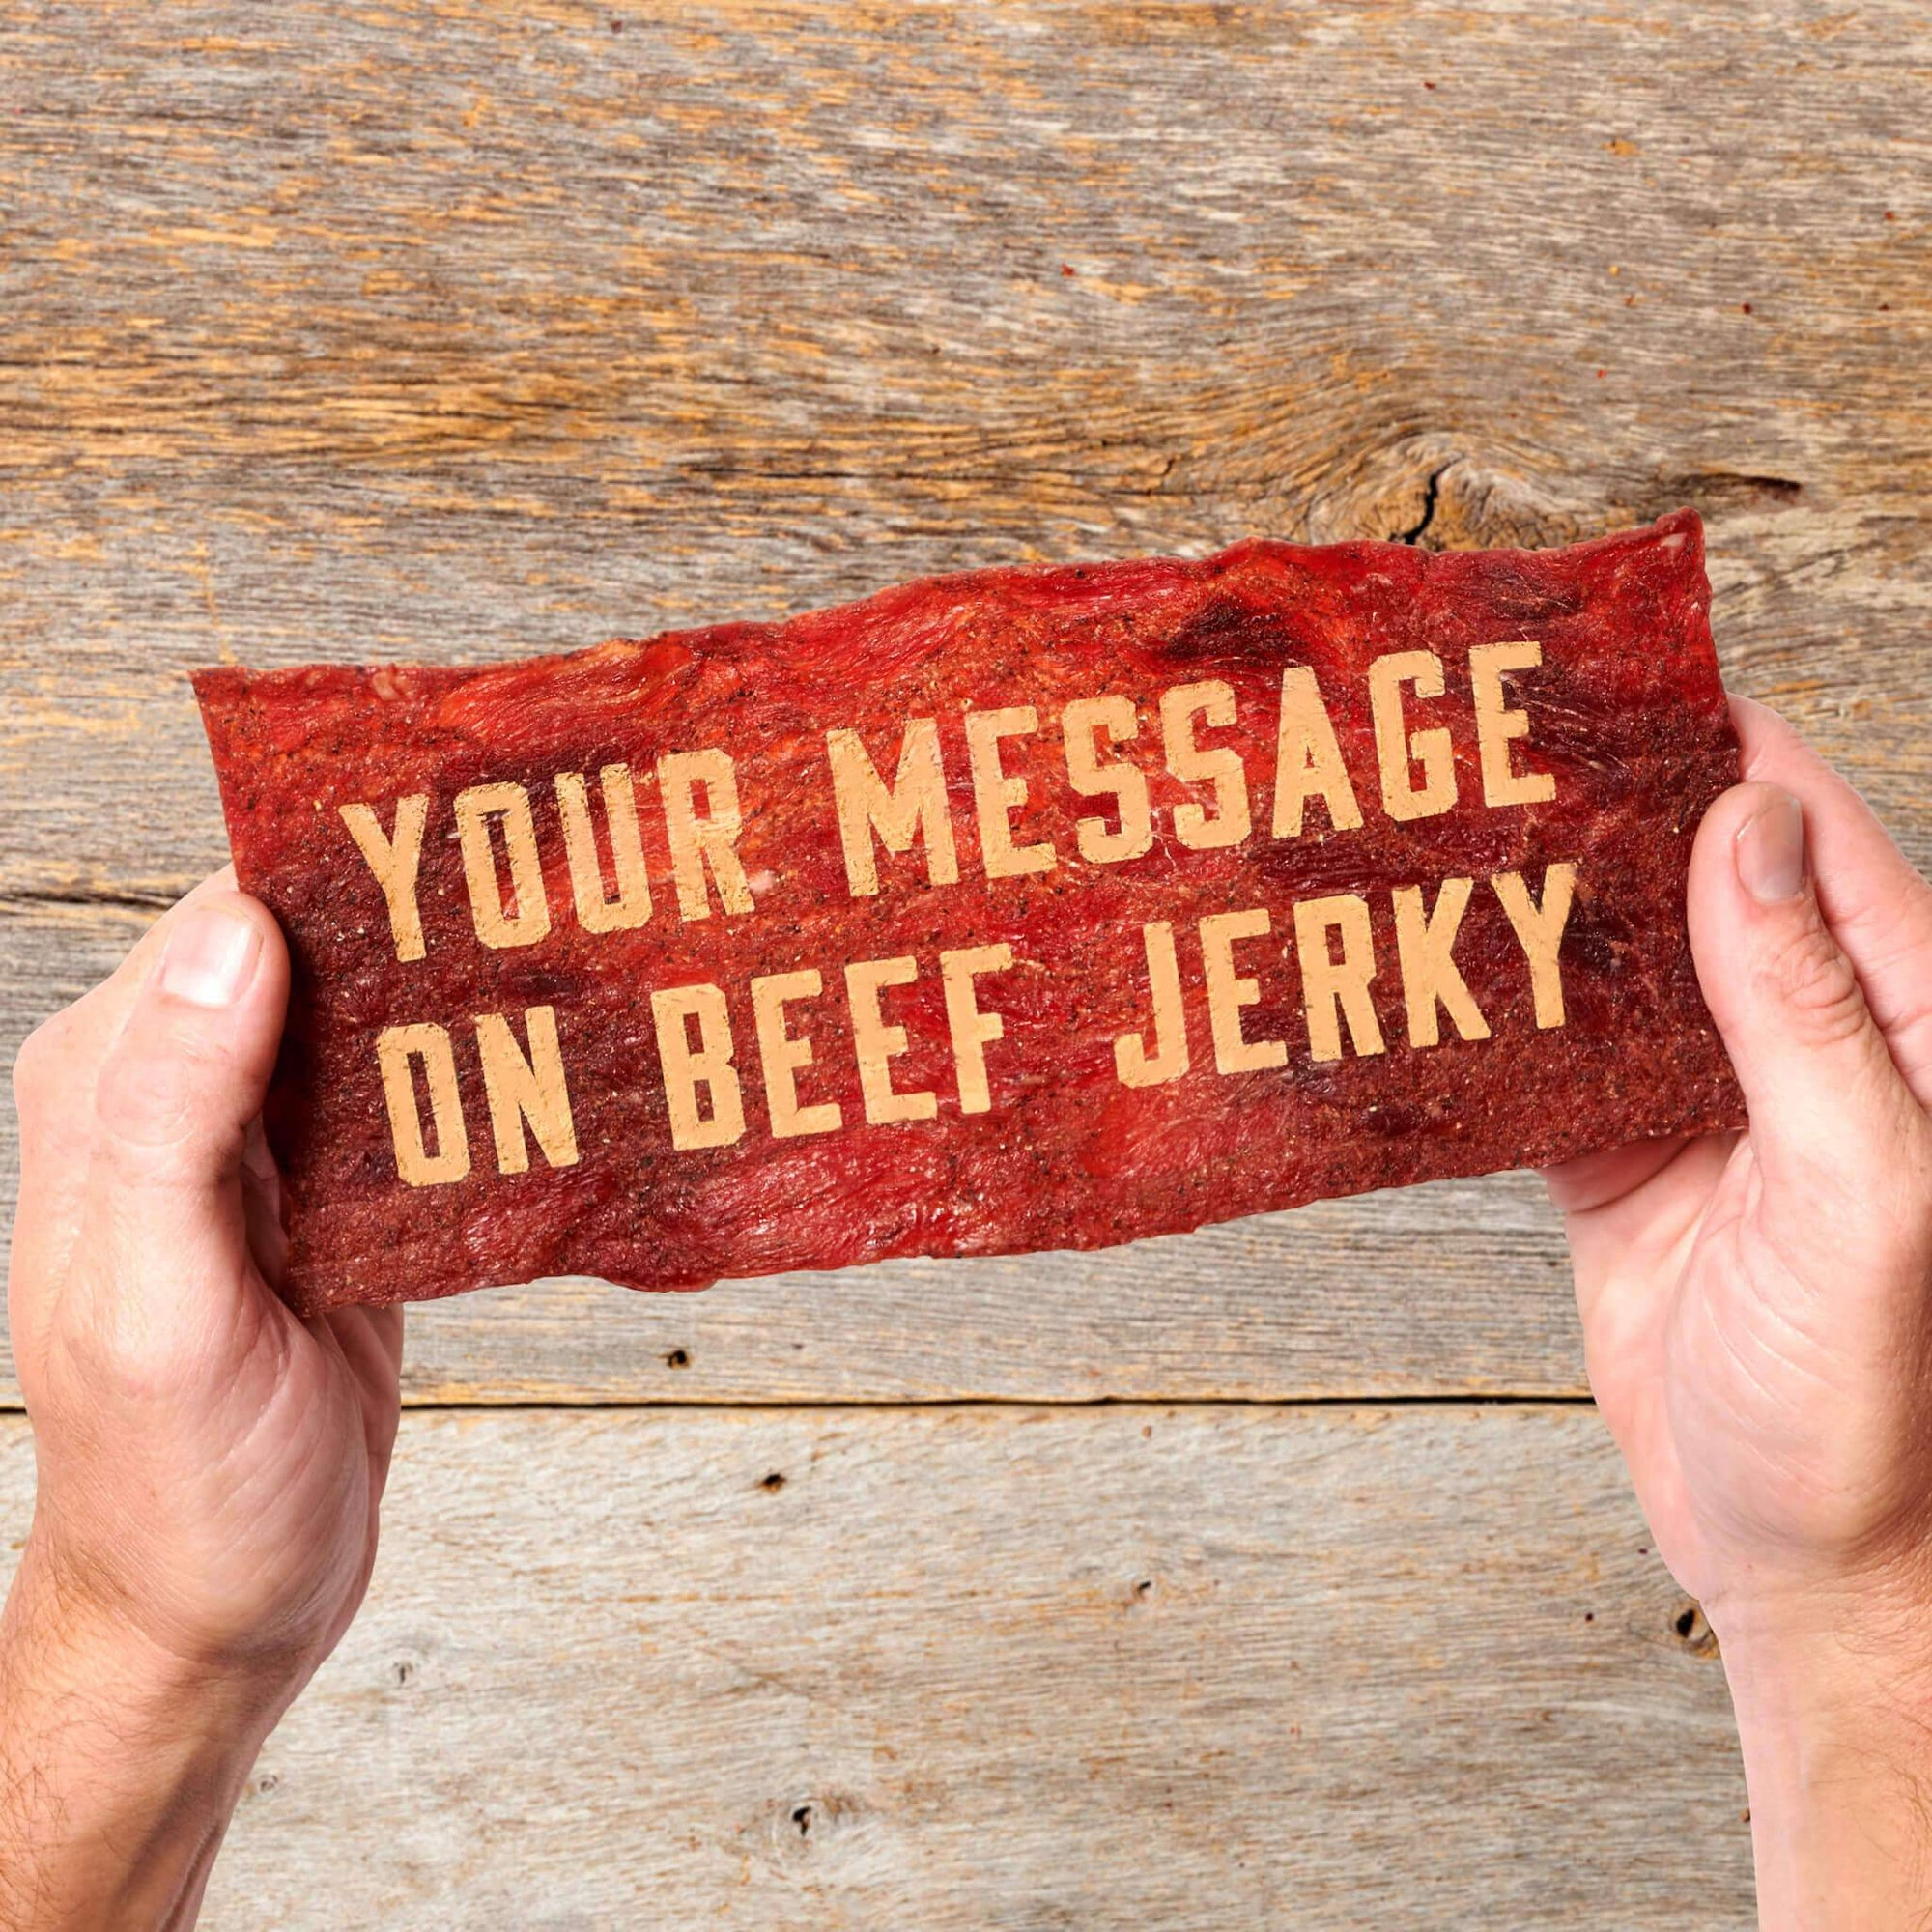 Naughty / dirty message written for a man, laser engraved on beef jerky greeting card